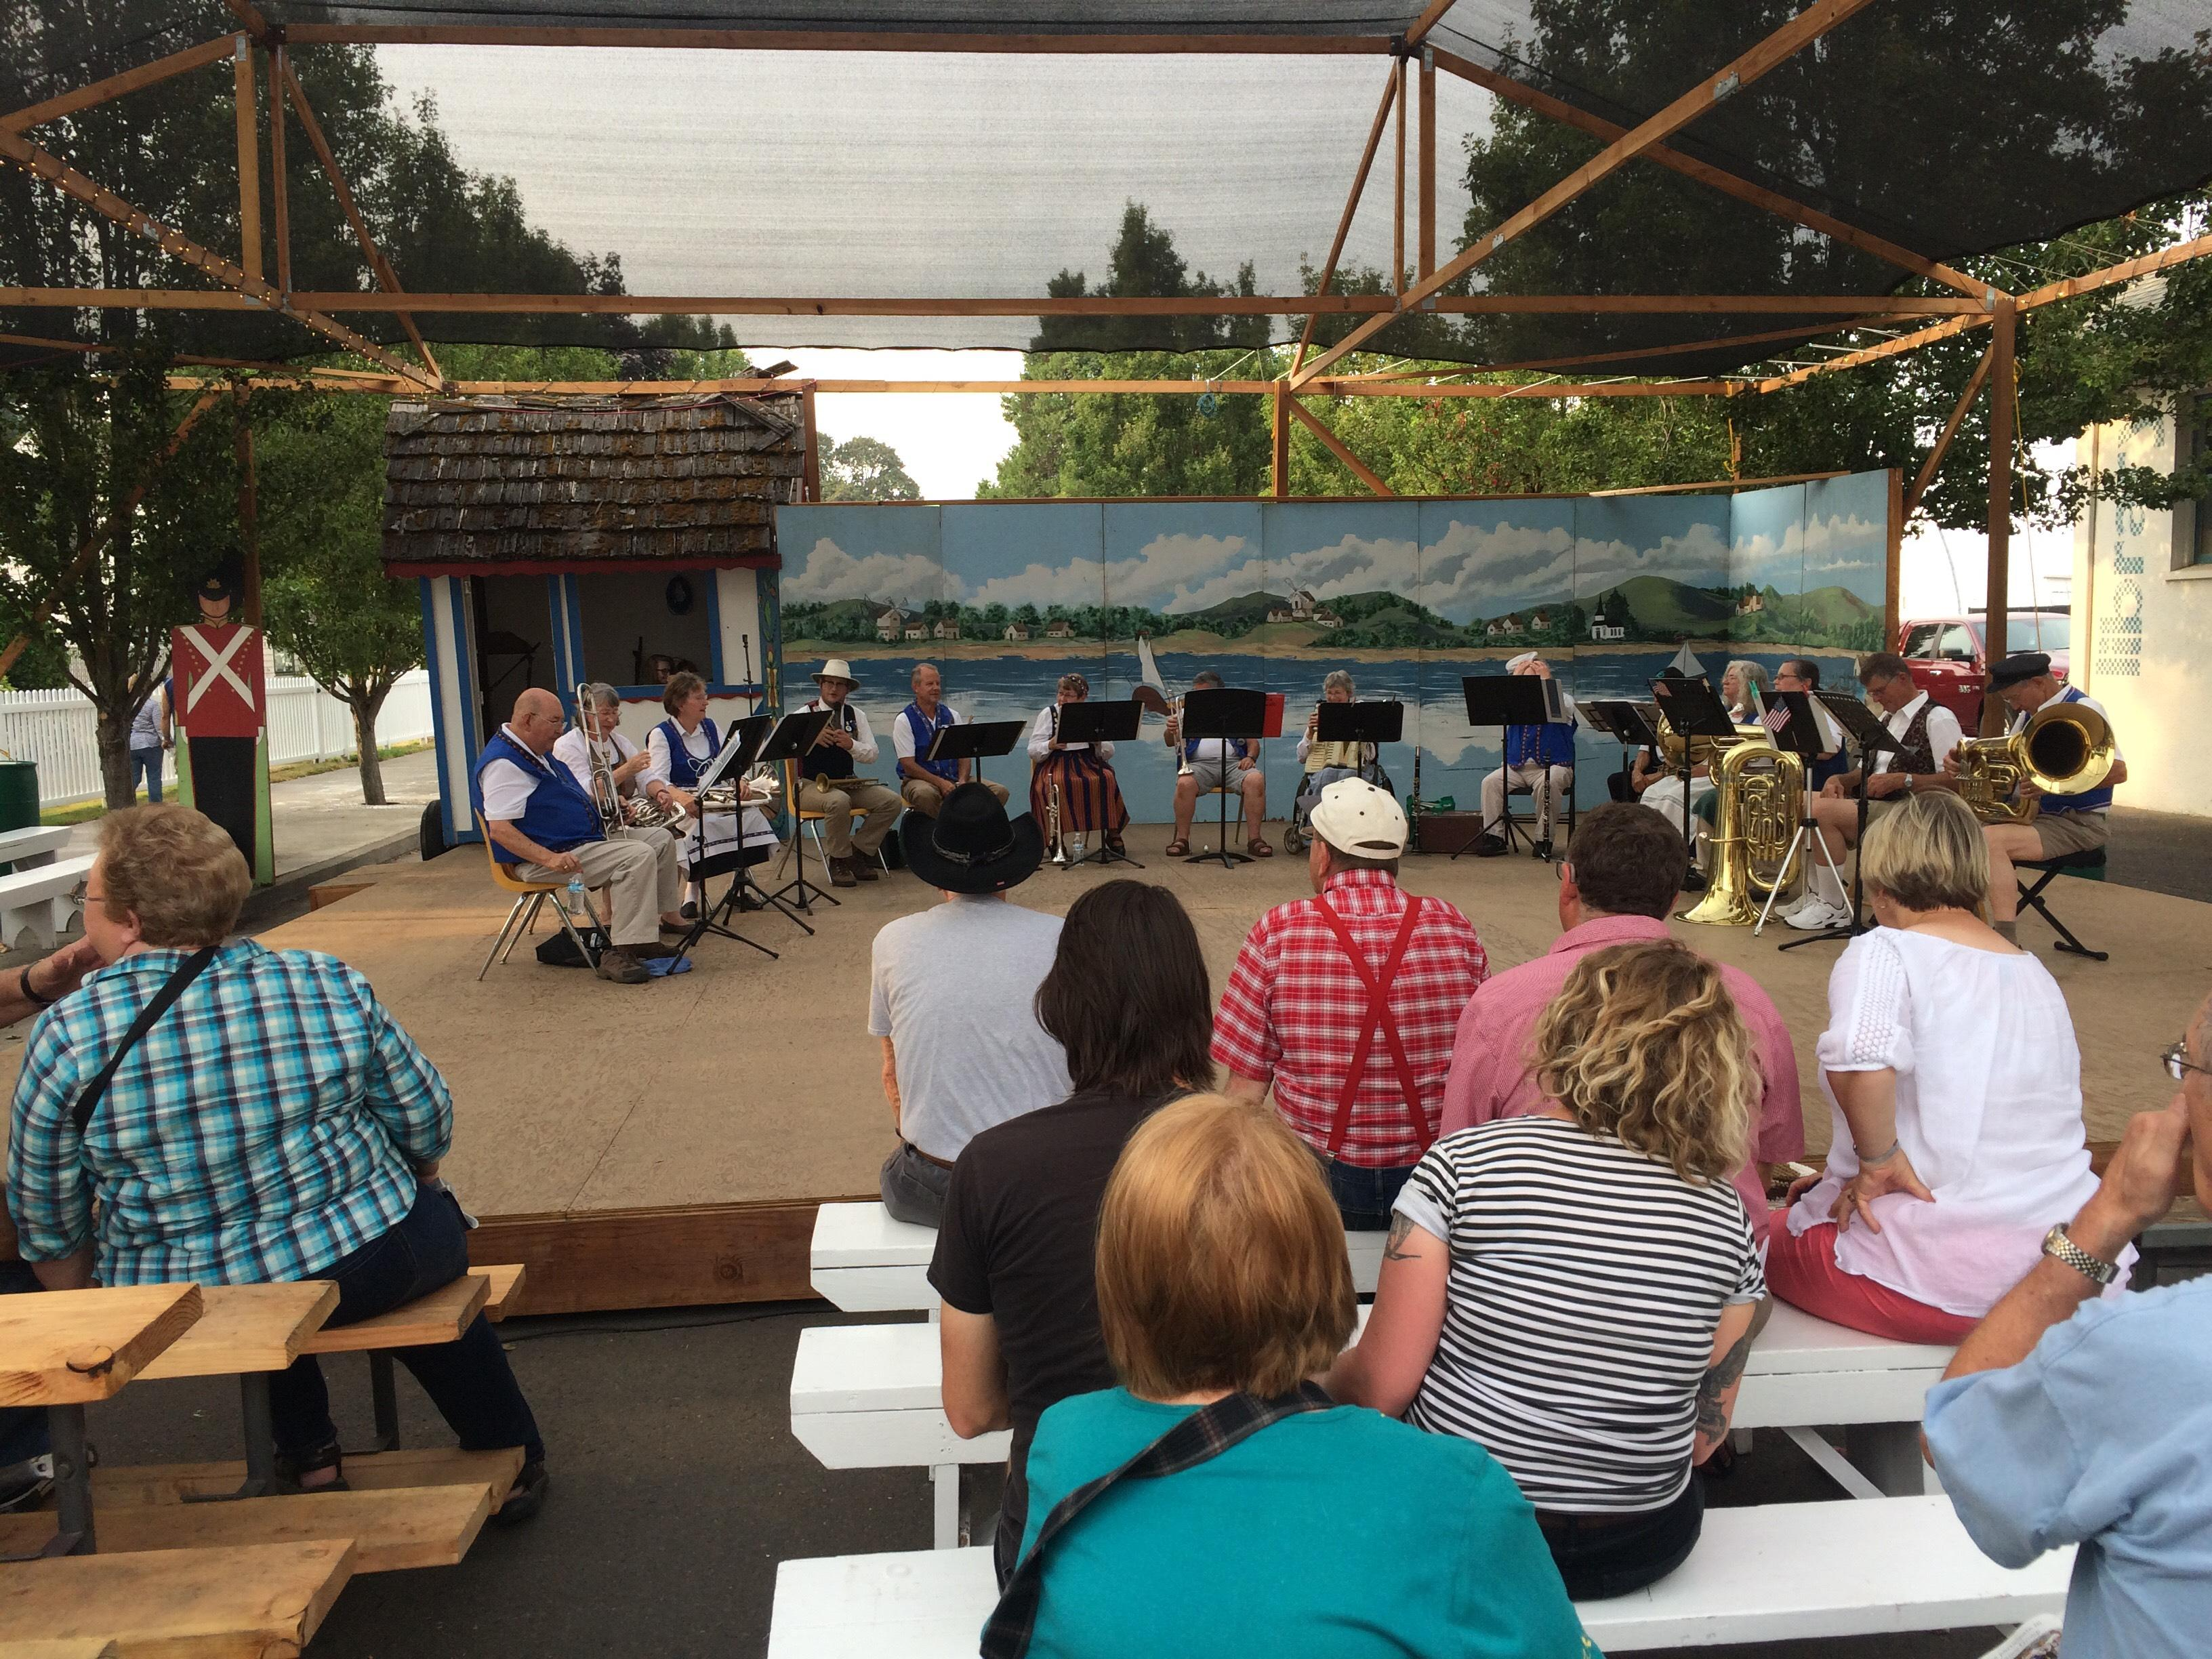 Scandi Fest continues through Sunday in Junction City (SBG/Emily Higgins)